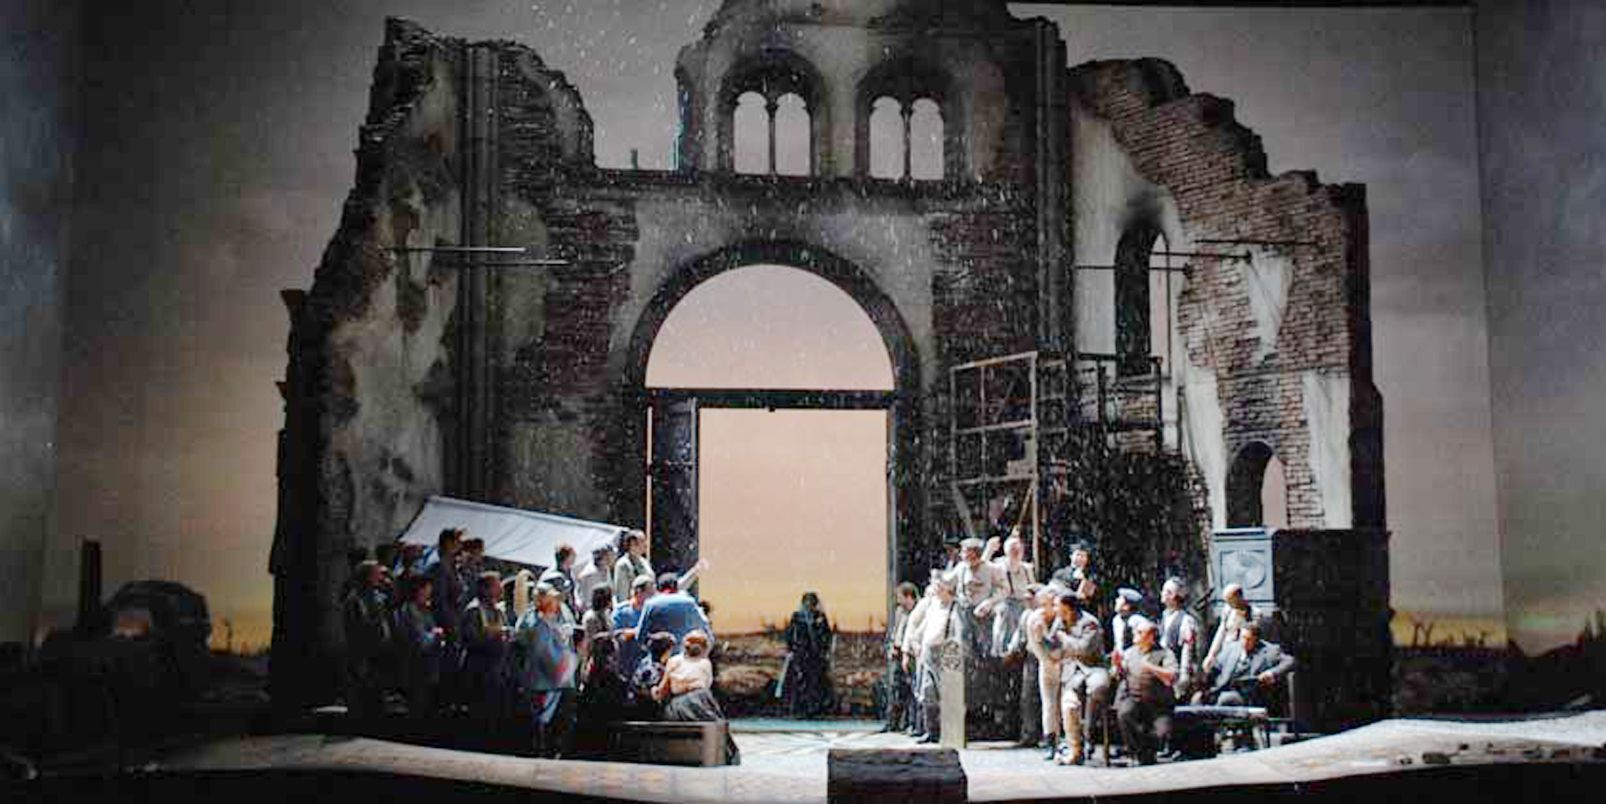 3d For The Real World Los Angeles Opera Uses Cinema 4d To Add Atmosphere And Spectacle To 2 Wagner Productions Scenic Design Set Design Theatre Scene Design